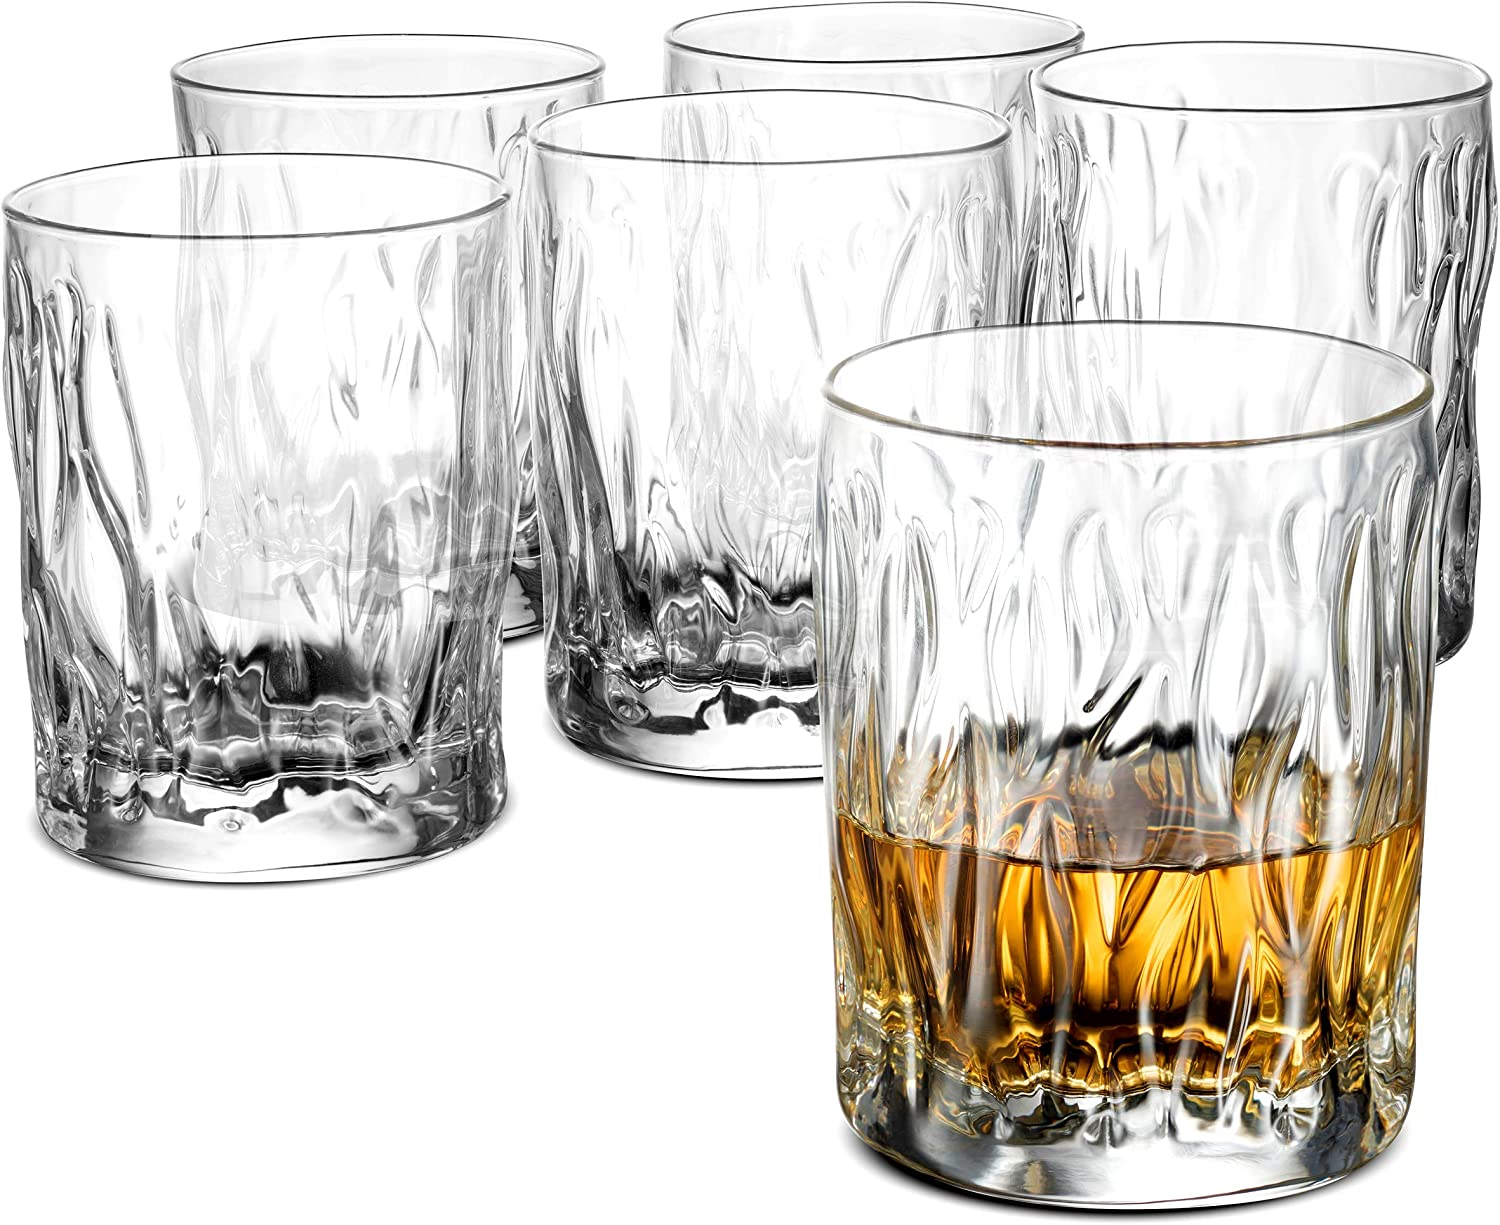 Double Old Fashioned Whiskey glasses - Set of 6 - Whiskey Glass set, 11 ¾ Ounce Crystal Clear Cocktail Glasses Barware For Whisky, Bourbon, Scotch, Water, Juice, Rock Glasses Drinking Glasses Gift Set